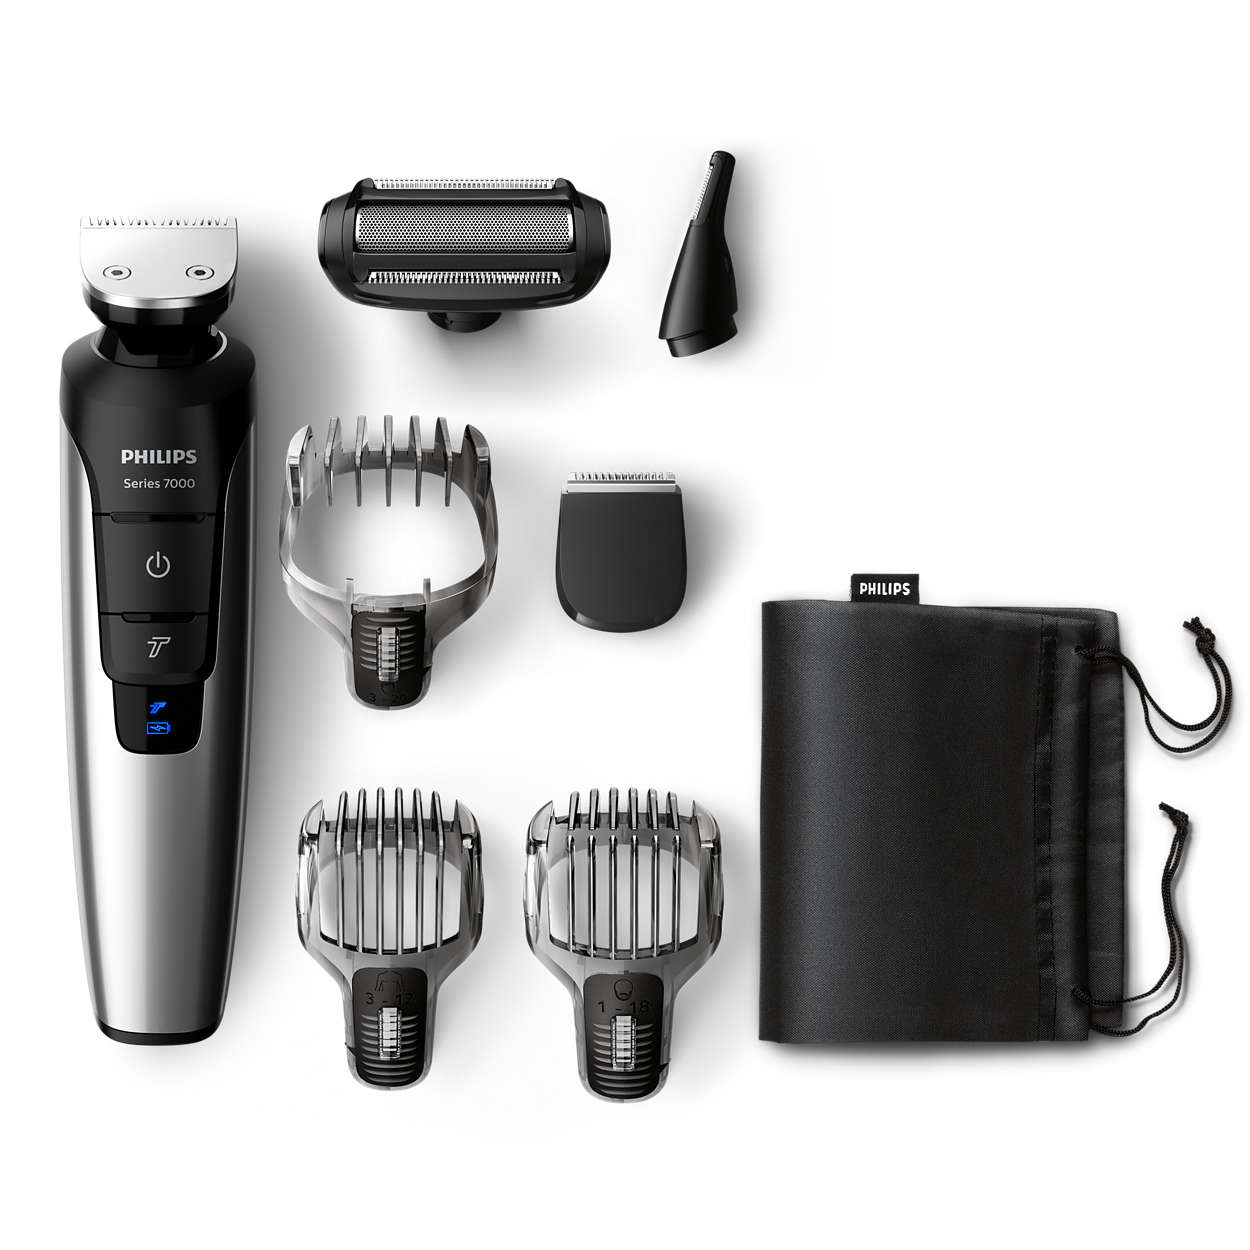 All-in-one lithium-ion beard, hair & body trimmer